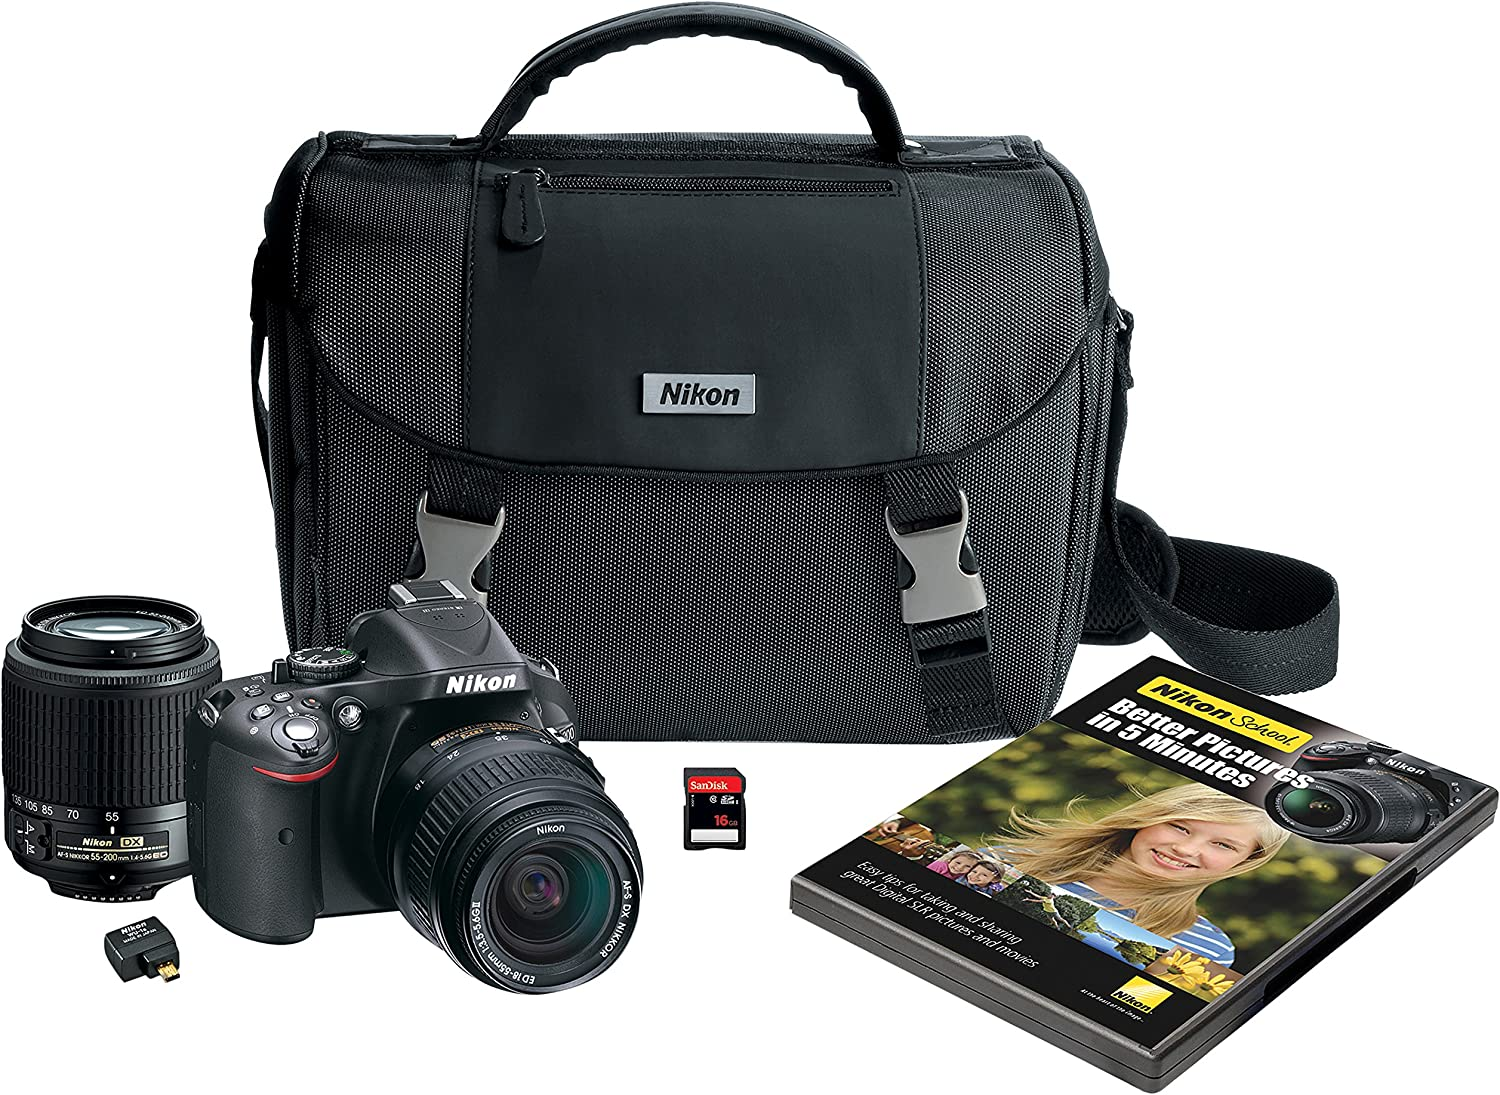 Nikon D5200 Digital Slr With 18 55mm 55 200mm Non Vr Lenses Black Discontinued By Manufacturer Camera Photo